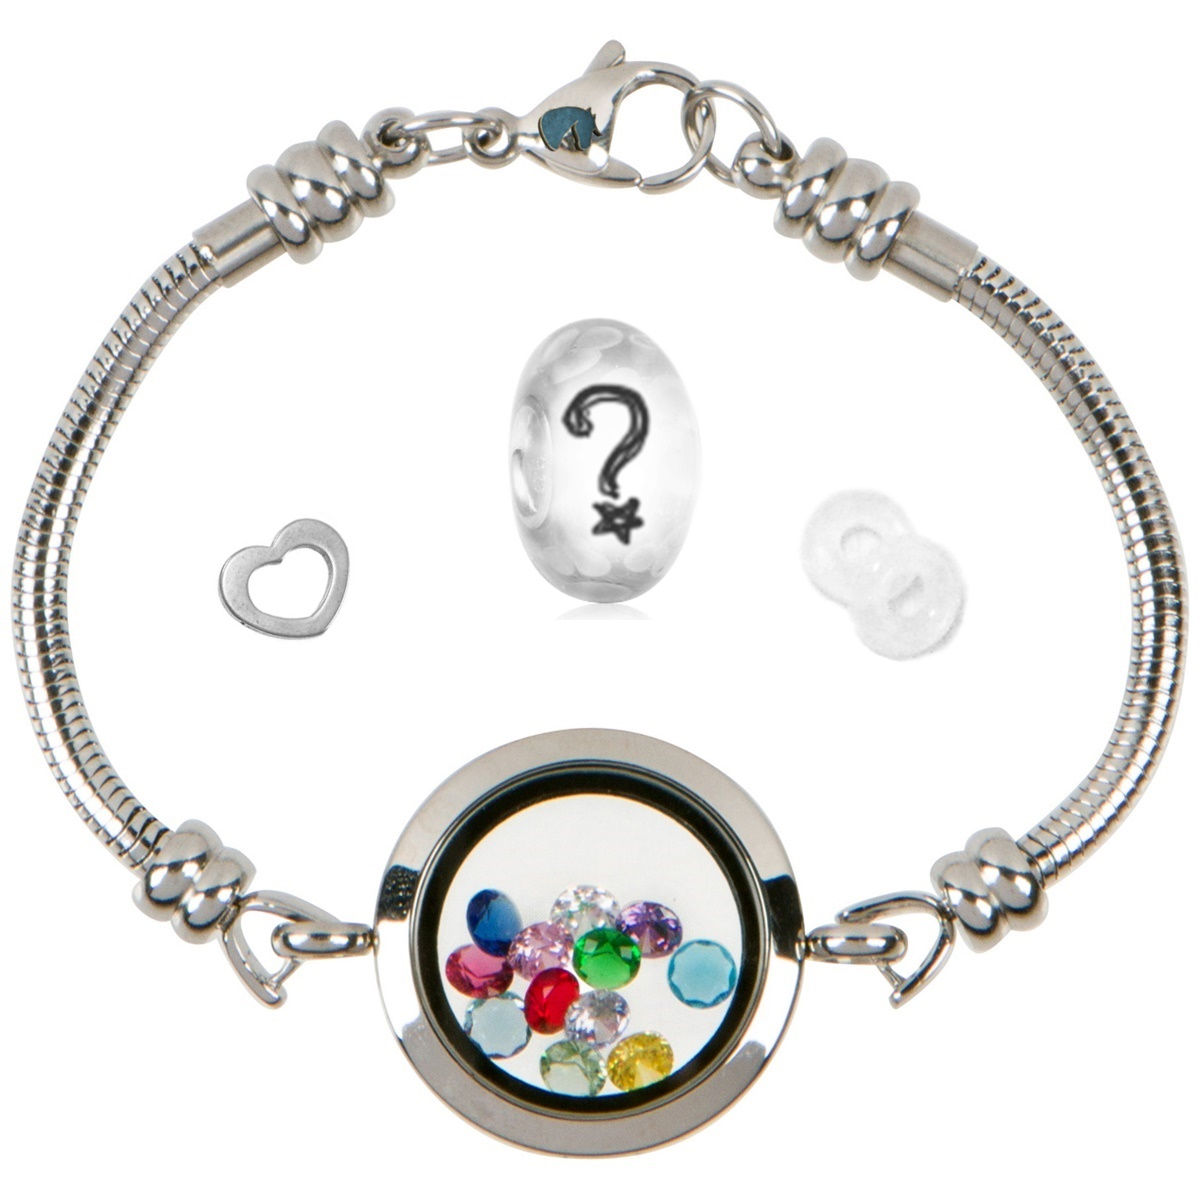 DNA Molecule Charm For Origami Owl | universebecoming | 1200x1200